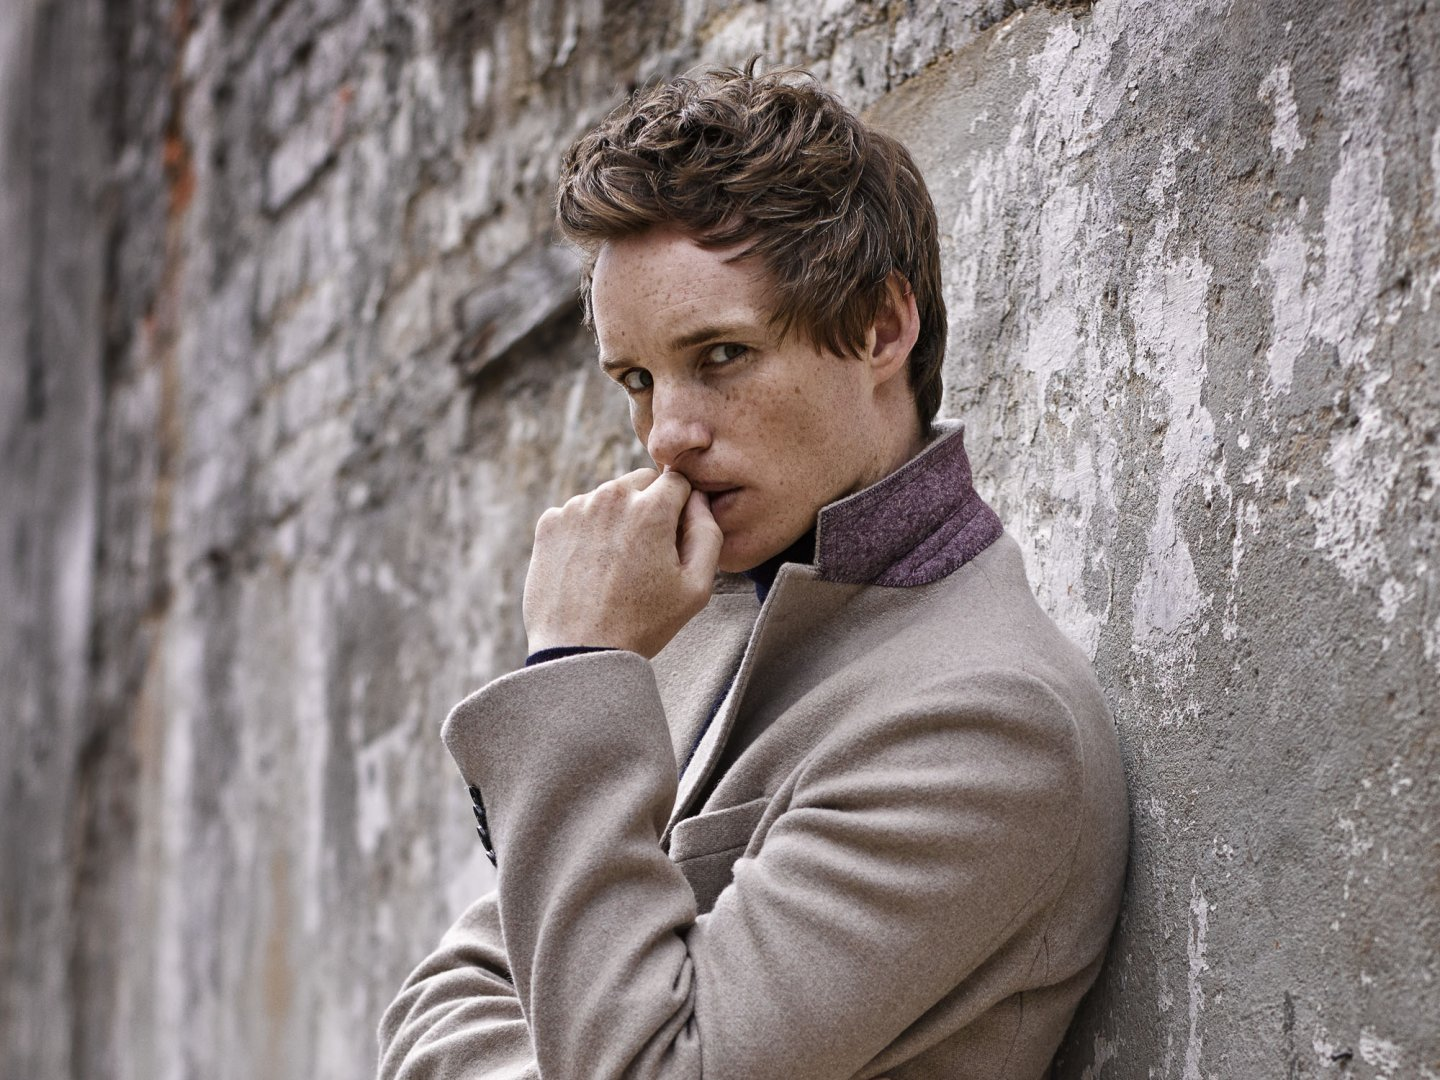 ... Eddie Redmayne Models This Year's Best Winter Coats